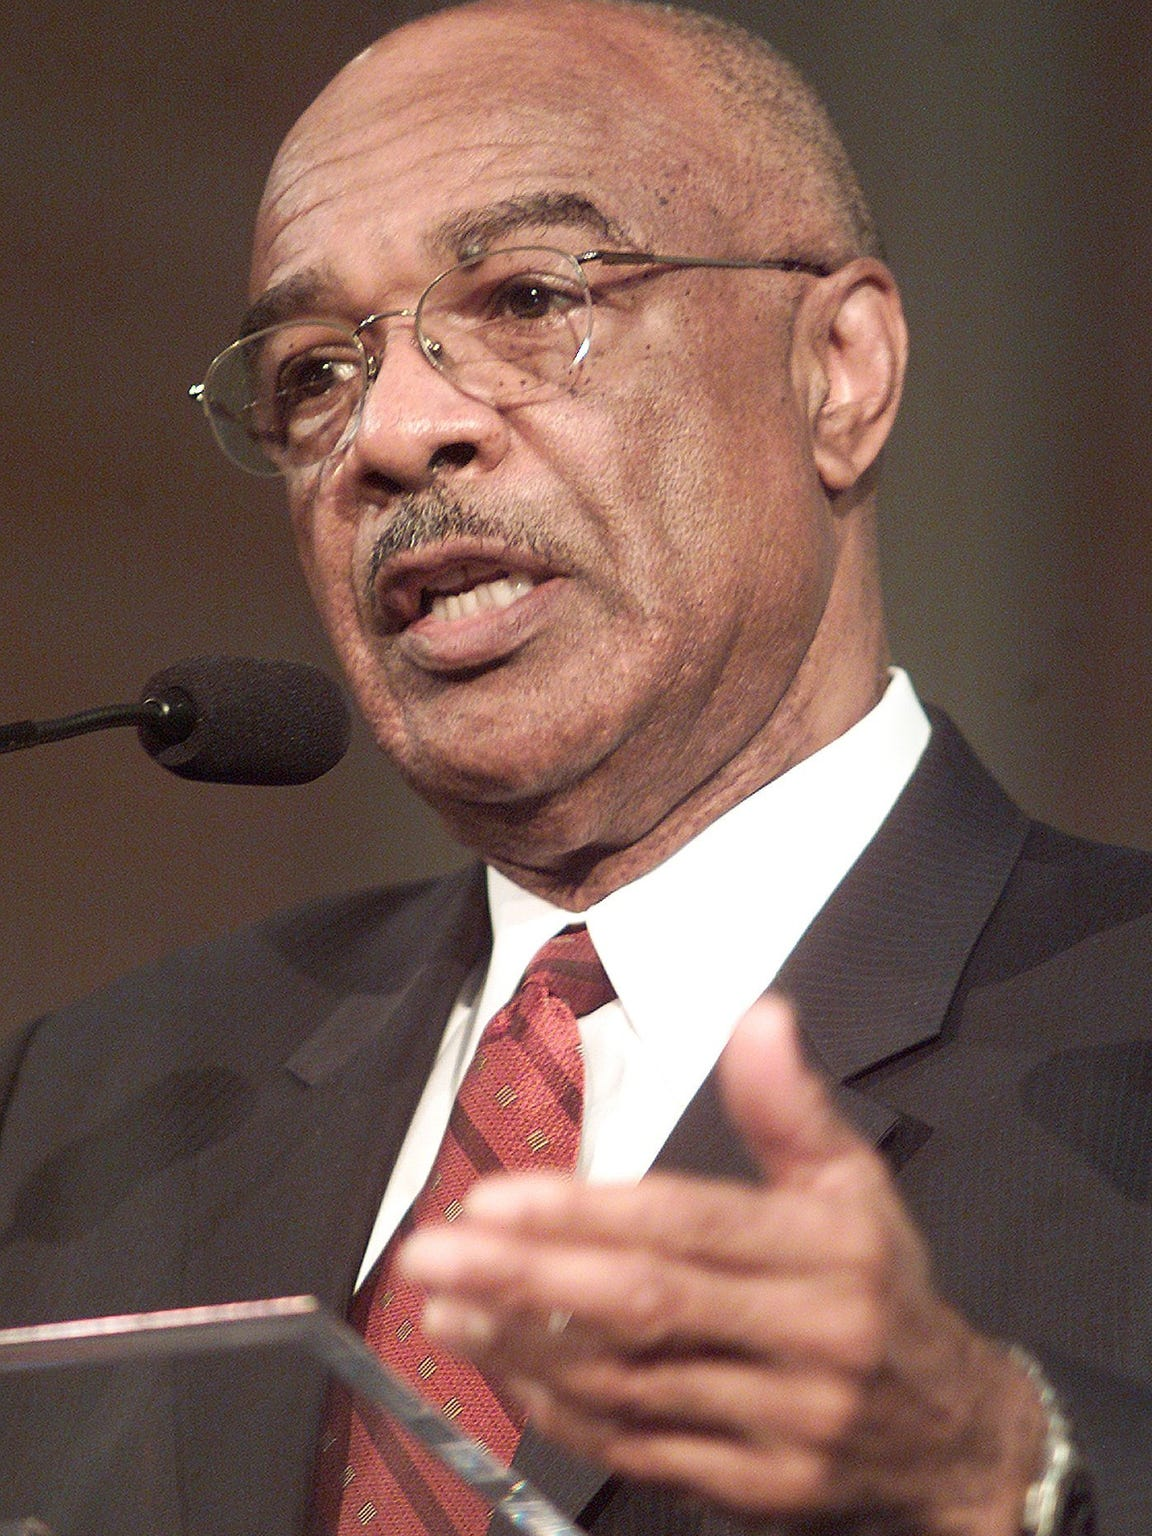 Rod Paige, former U. S. secretary of education, posted a 25-19 record as JSU's head coach and hired Bob Hill and W.C. Gorden as assistants during his tenure.